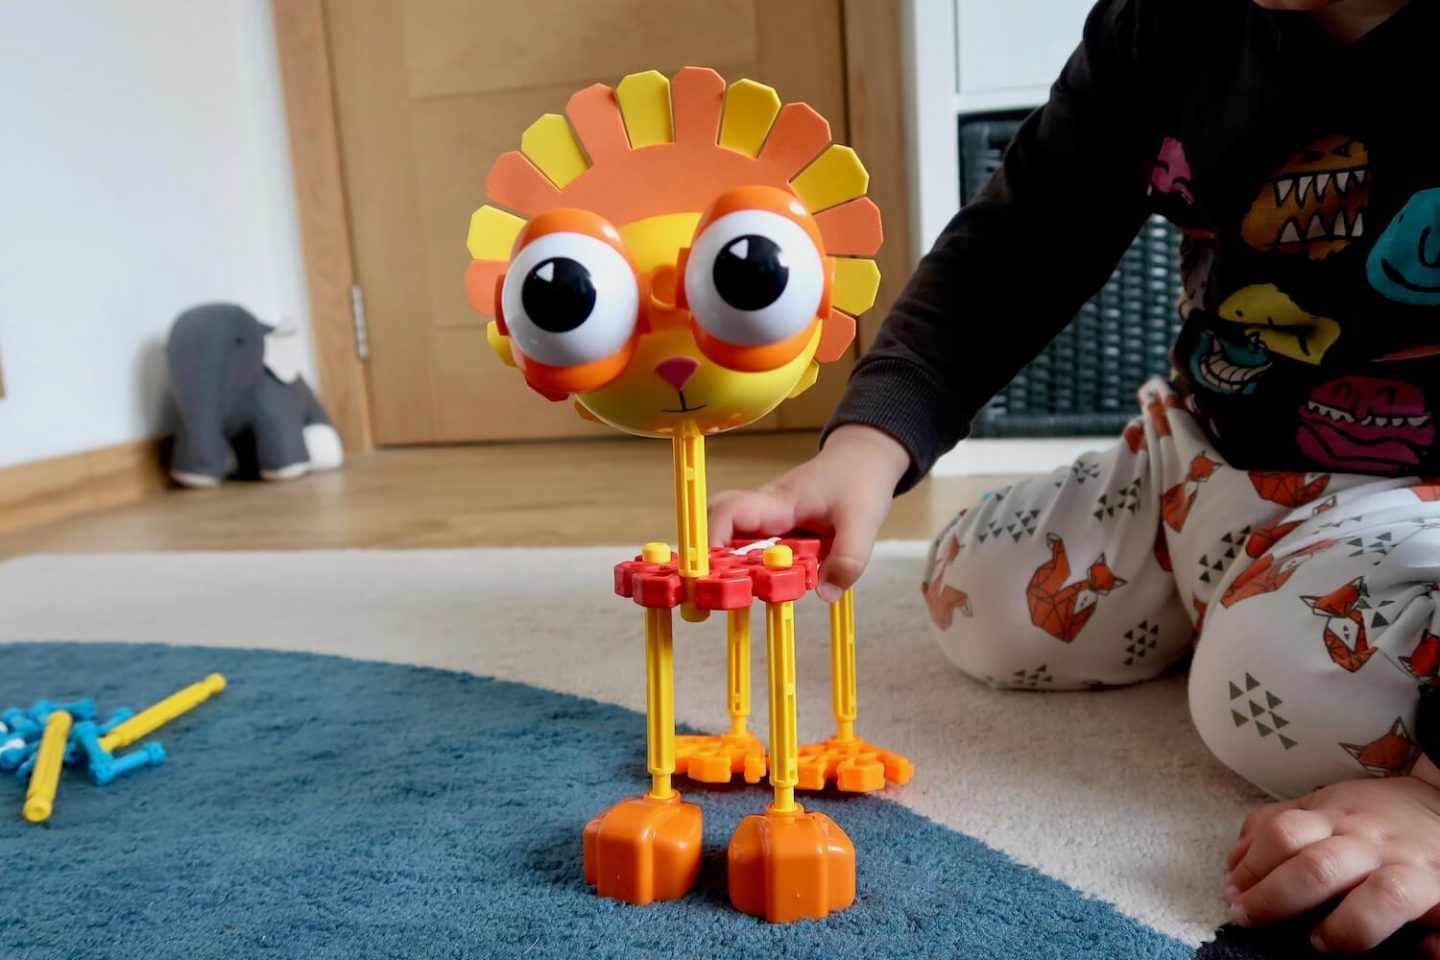 A lion made out of K'Nex with a child's hand on it's back